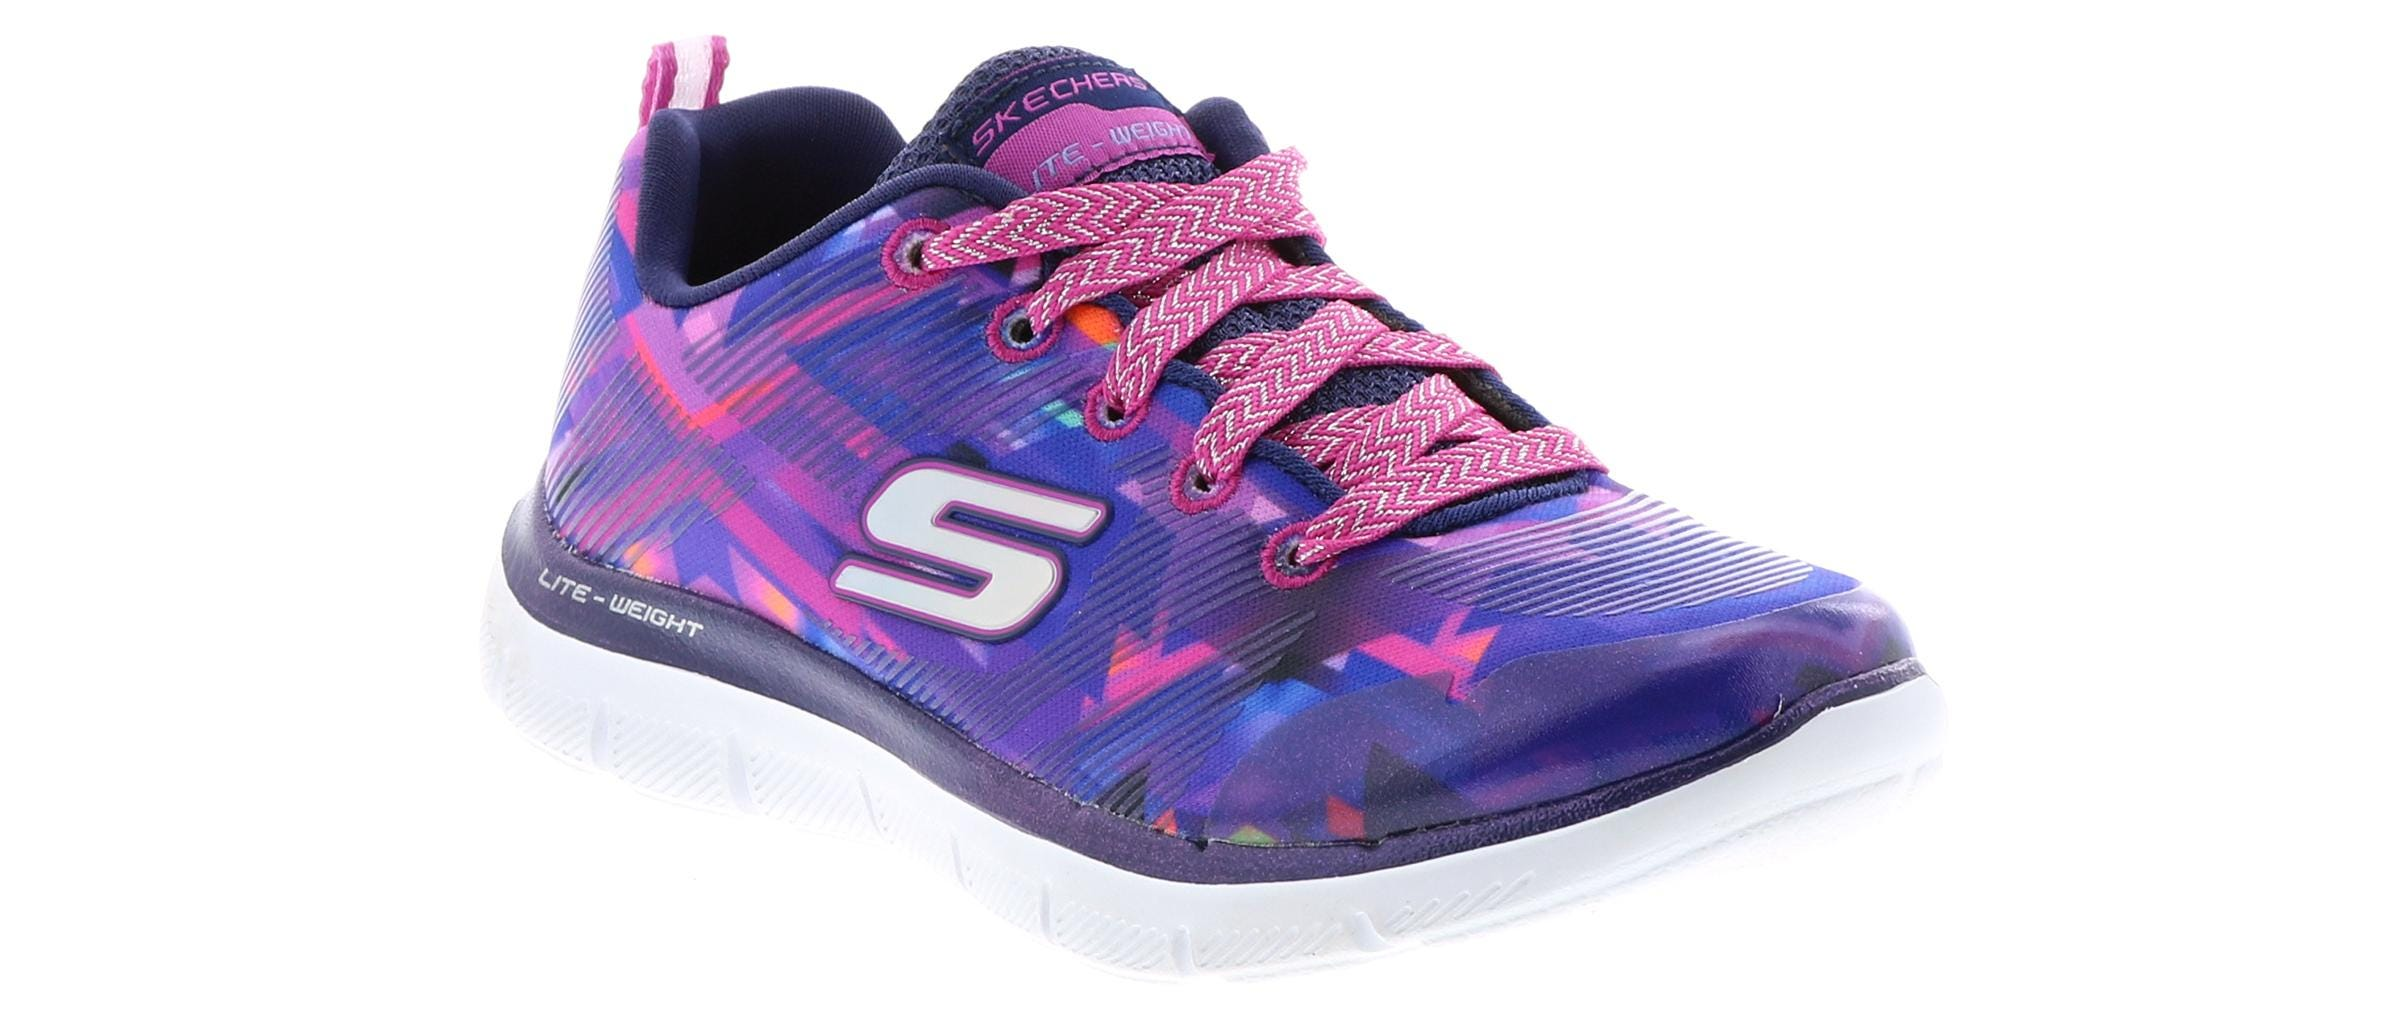 skechers jelly shoes